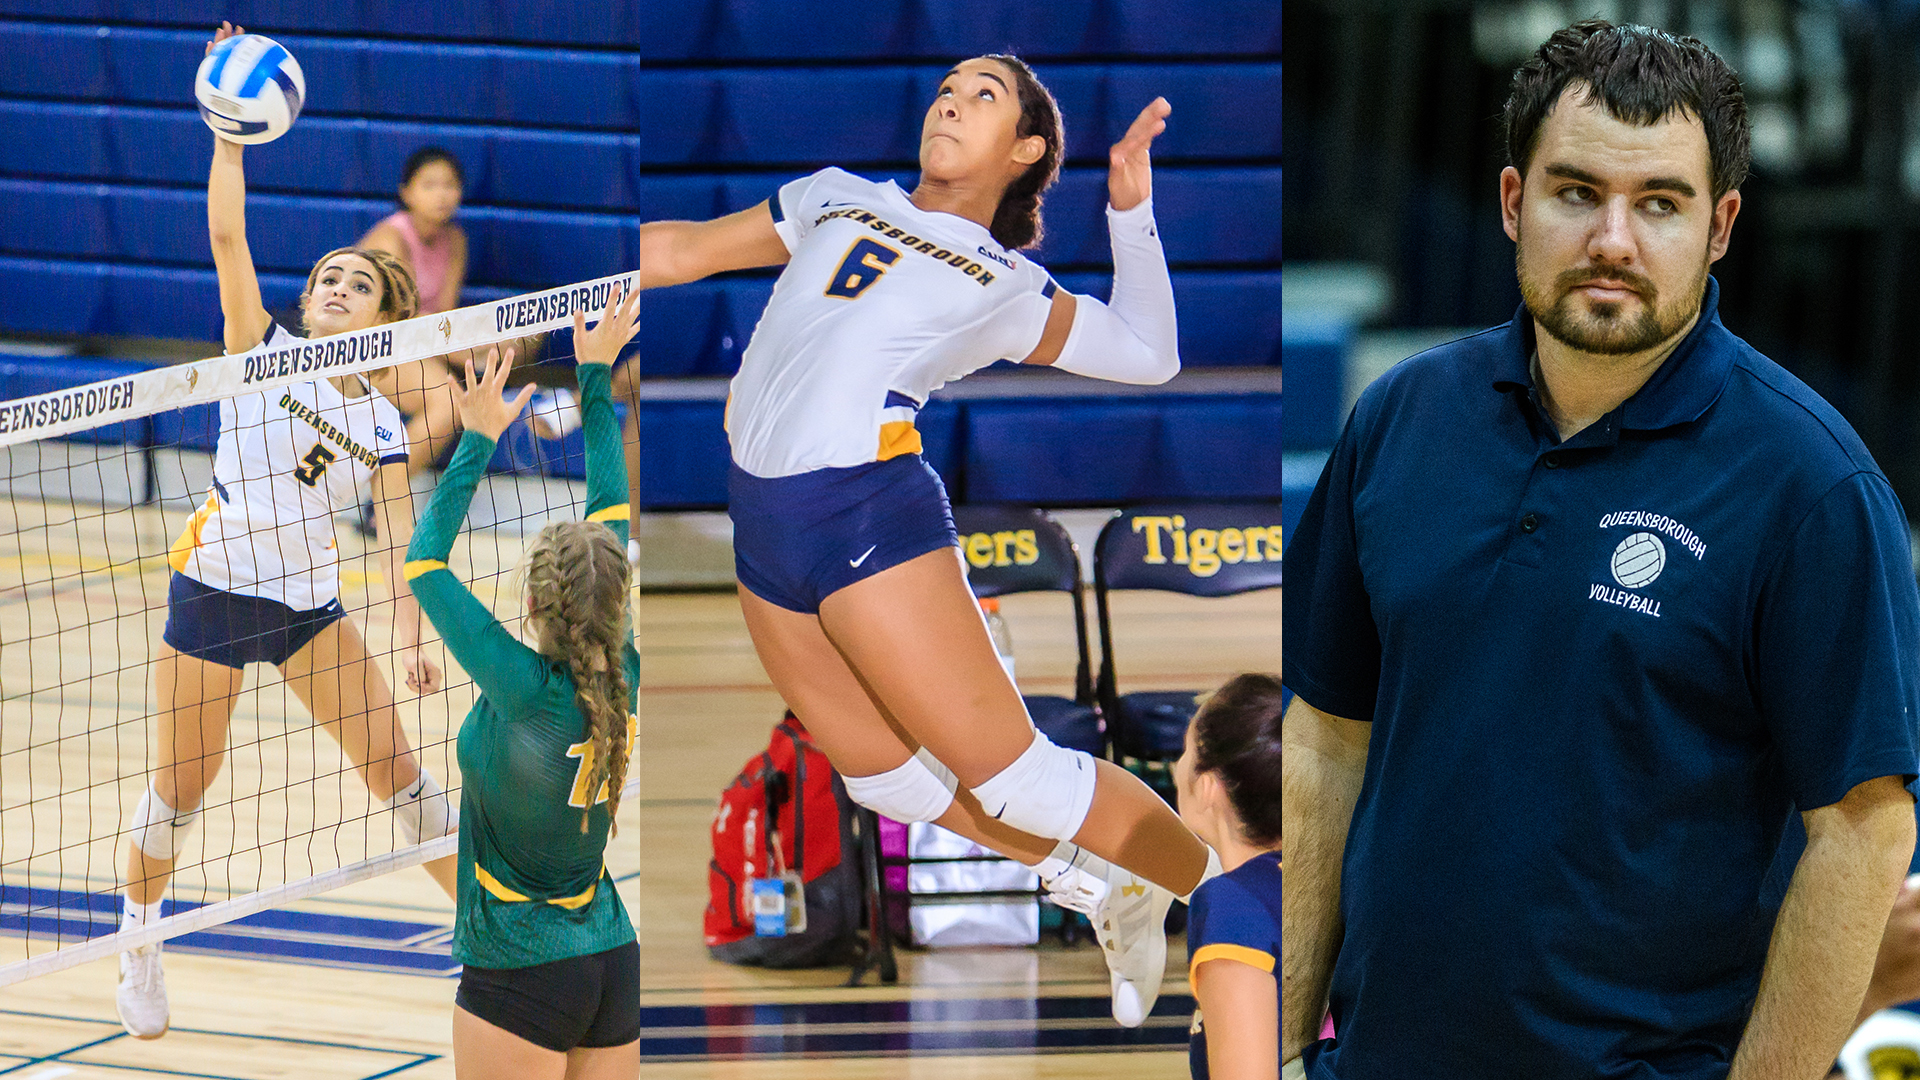 Paola Beniquez, Ashley Saladin, and Coach Jason Demas named